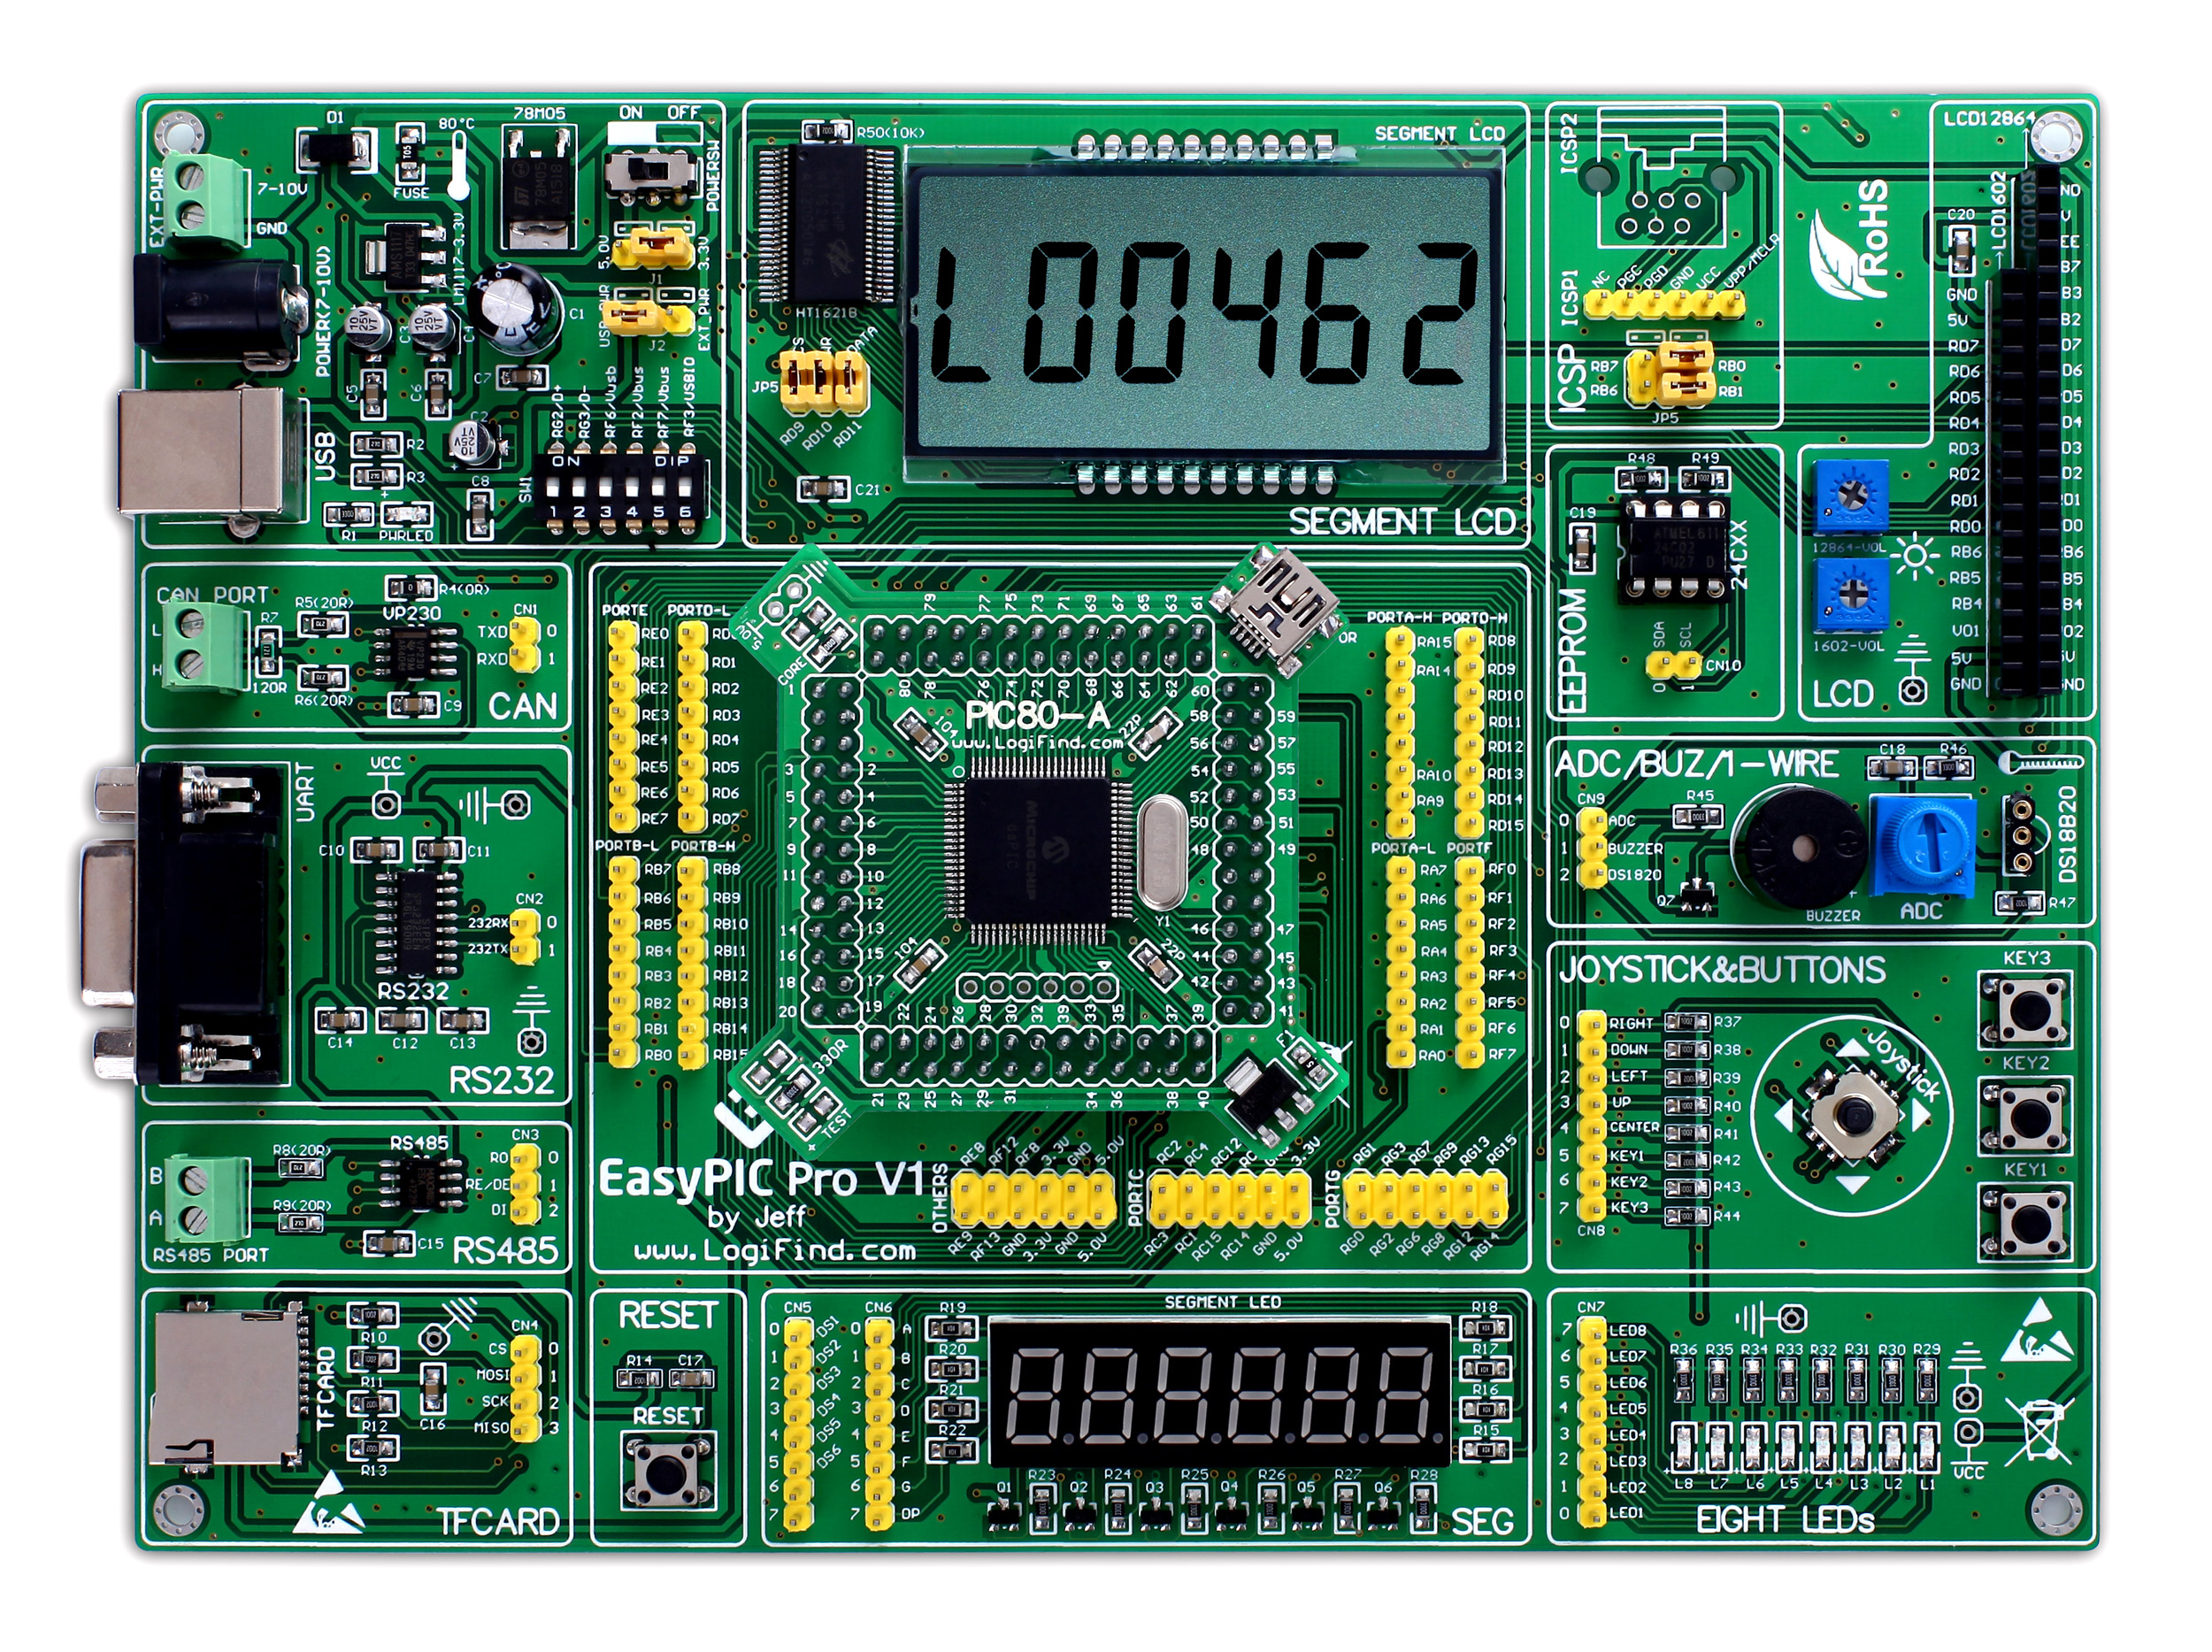 EasyPIC Pro Learning Evaluation Development Board DsPIC PIC32 PIC24EasyPIC Pro Learning Evaluation Development Board DsPIC PIC32 PIC24